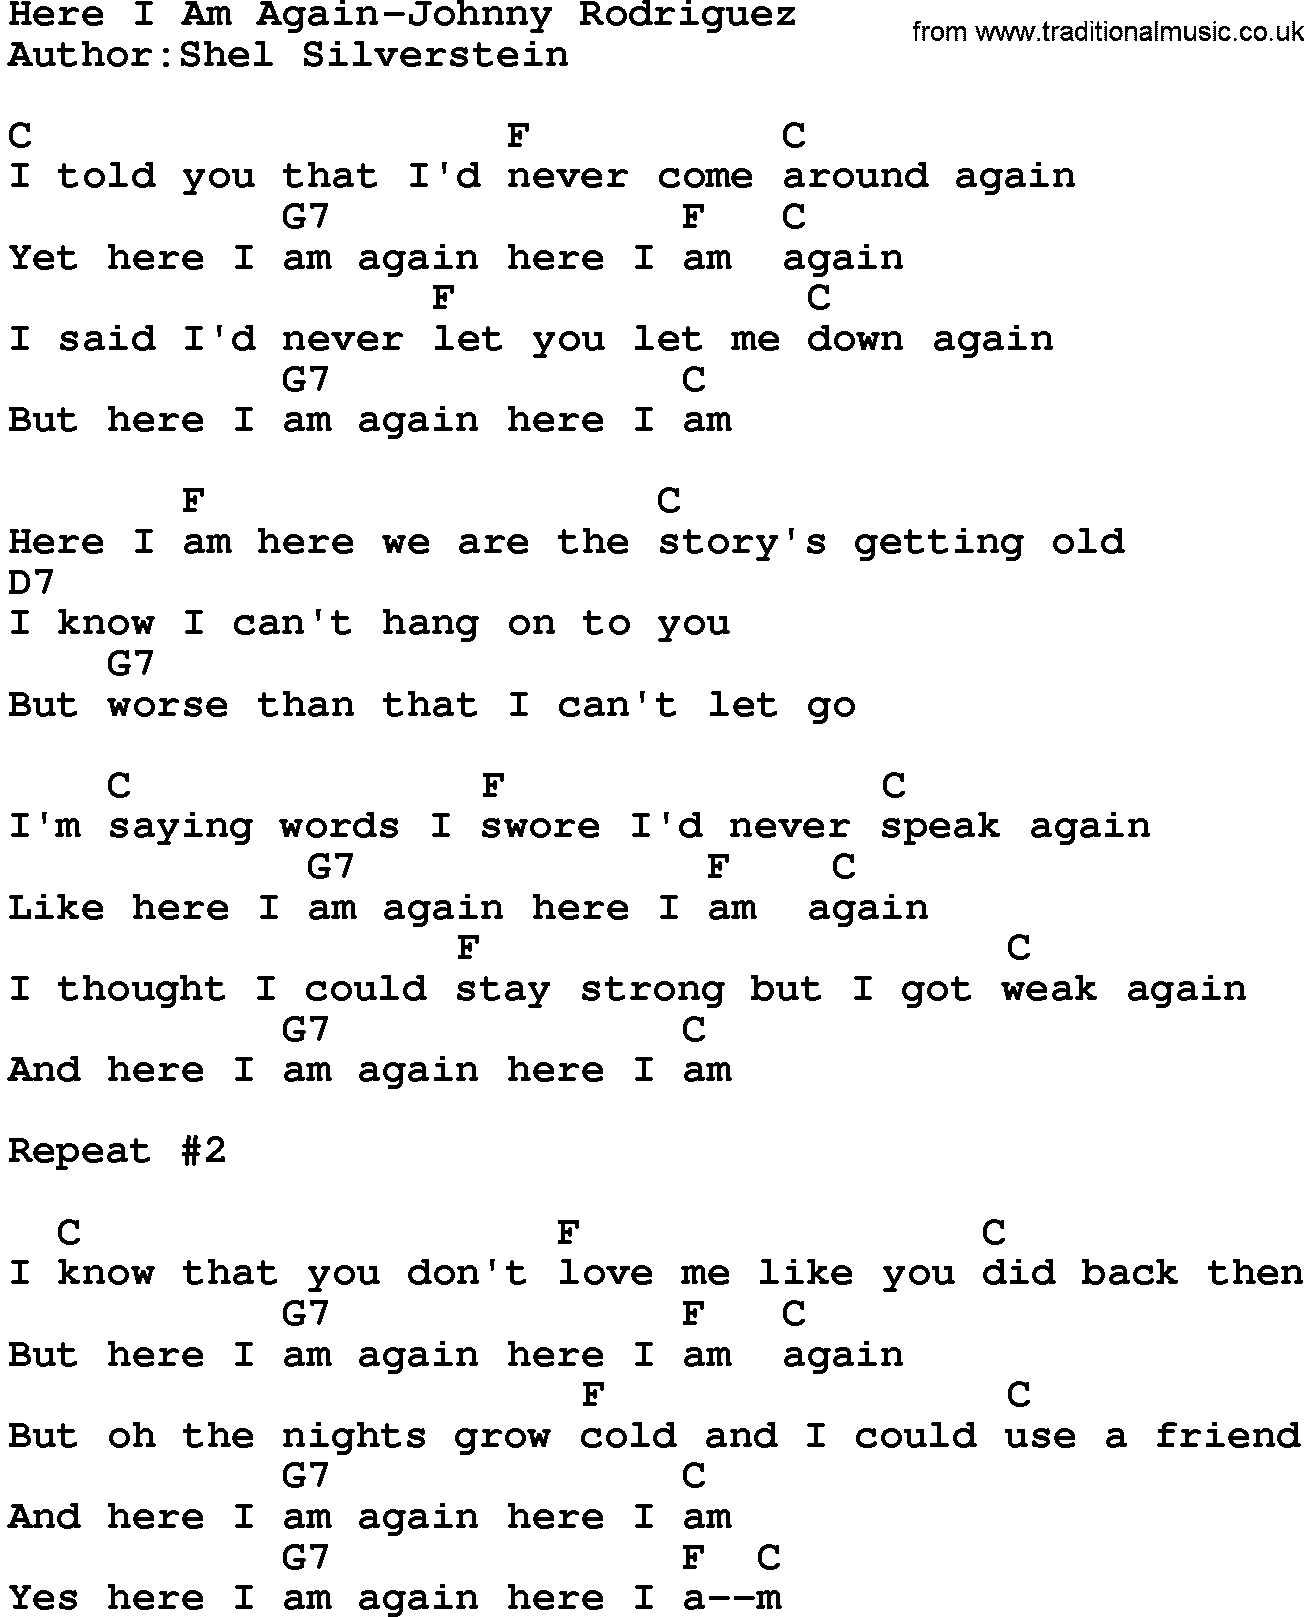 Country Musichere I Am Again Johnny Rodriguez Lyrics And Chords